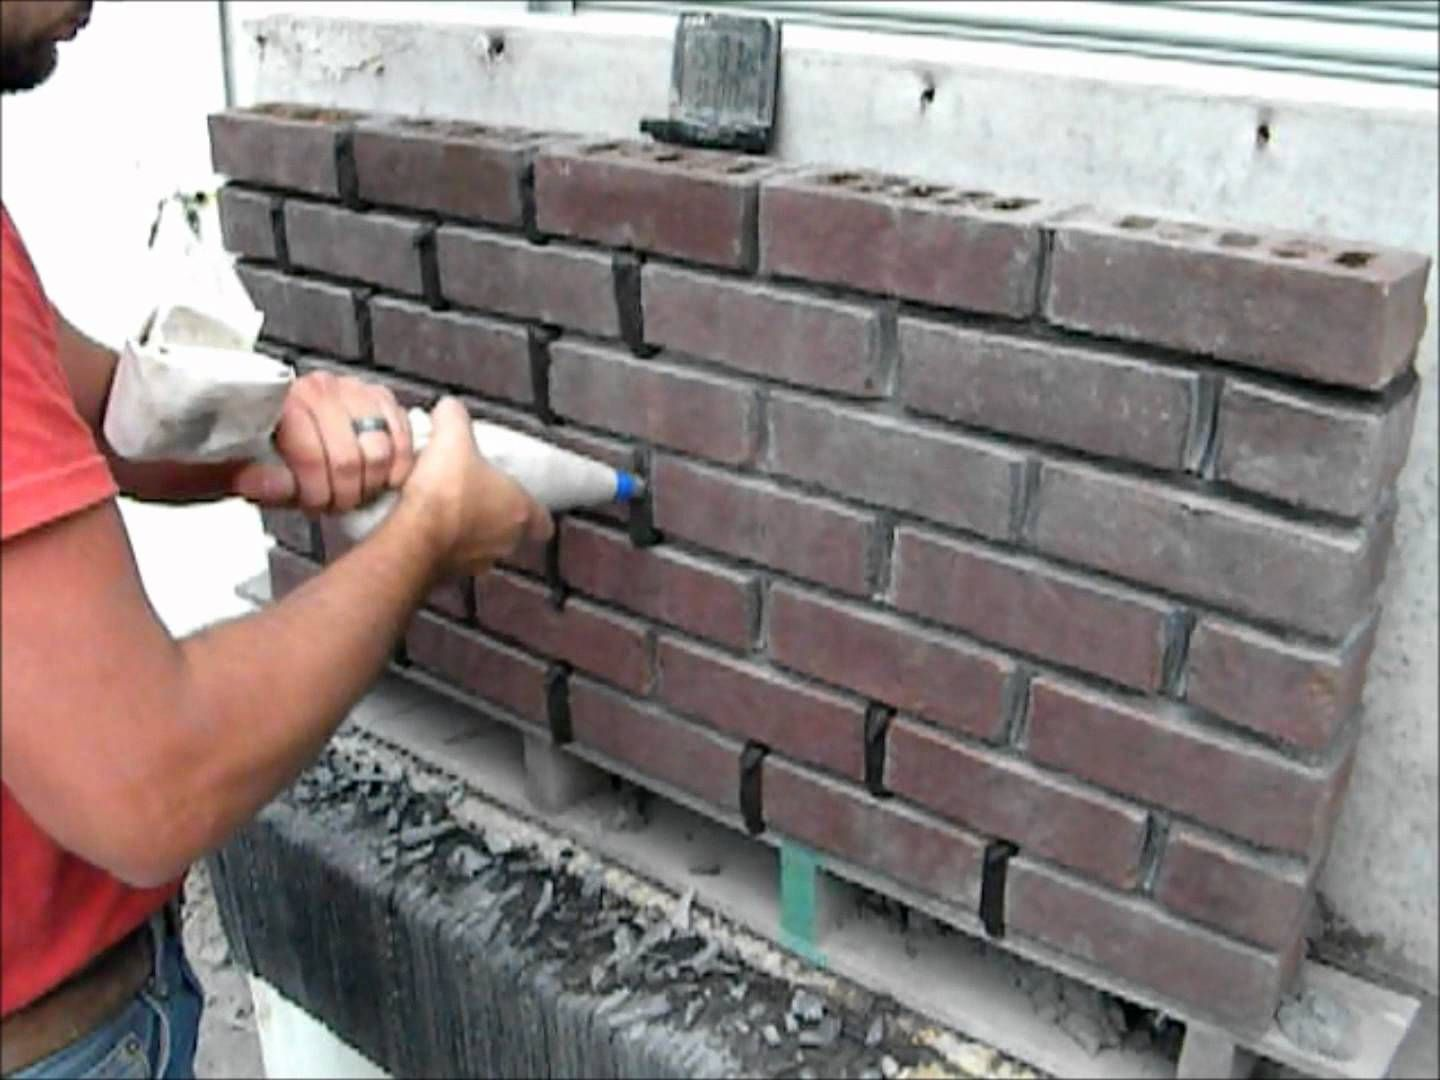 This Video Show The Process Of Masonry Tuck Pointing A Brick Wall Using A Masonry Grout Bag This Process Is Muc Brick Walkway Brick Decor Brick Fireplace Wall